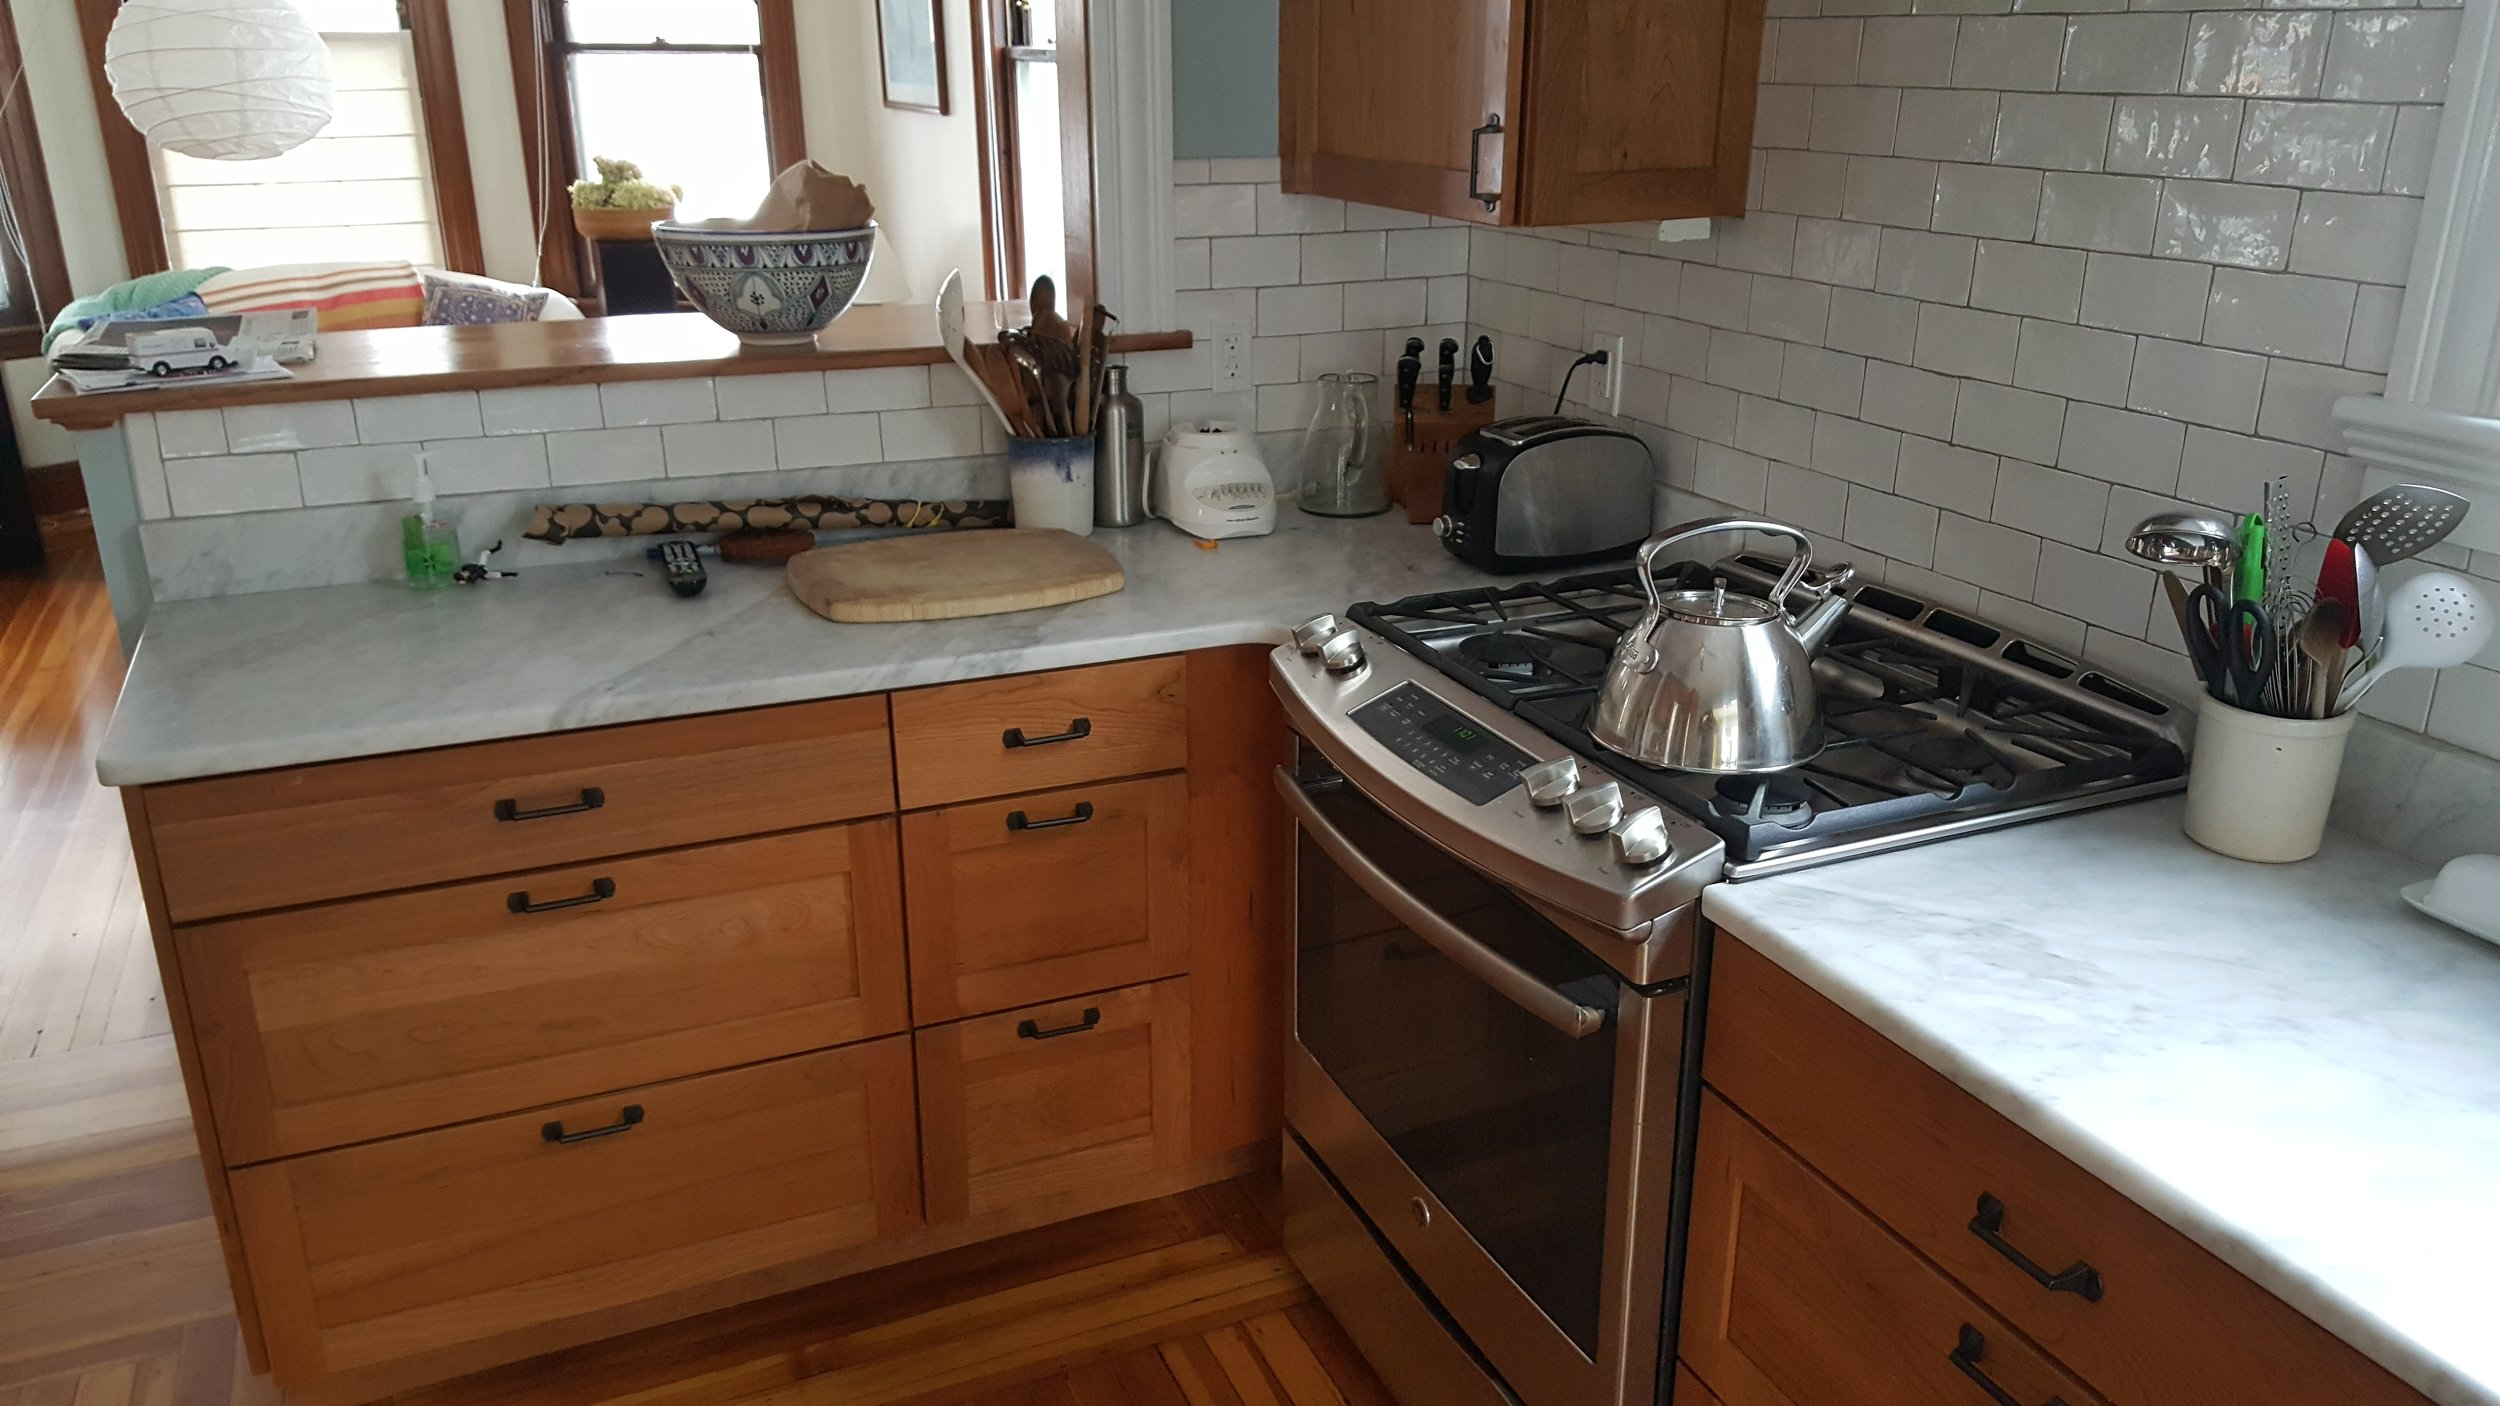 Touchstone Cherry Cabinets, White Carrara Top, irregular subway tile, grey grout. The chimney was right in front of you.